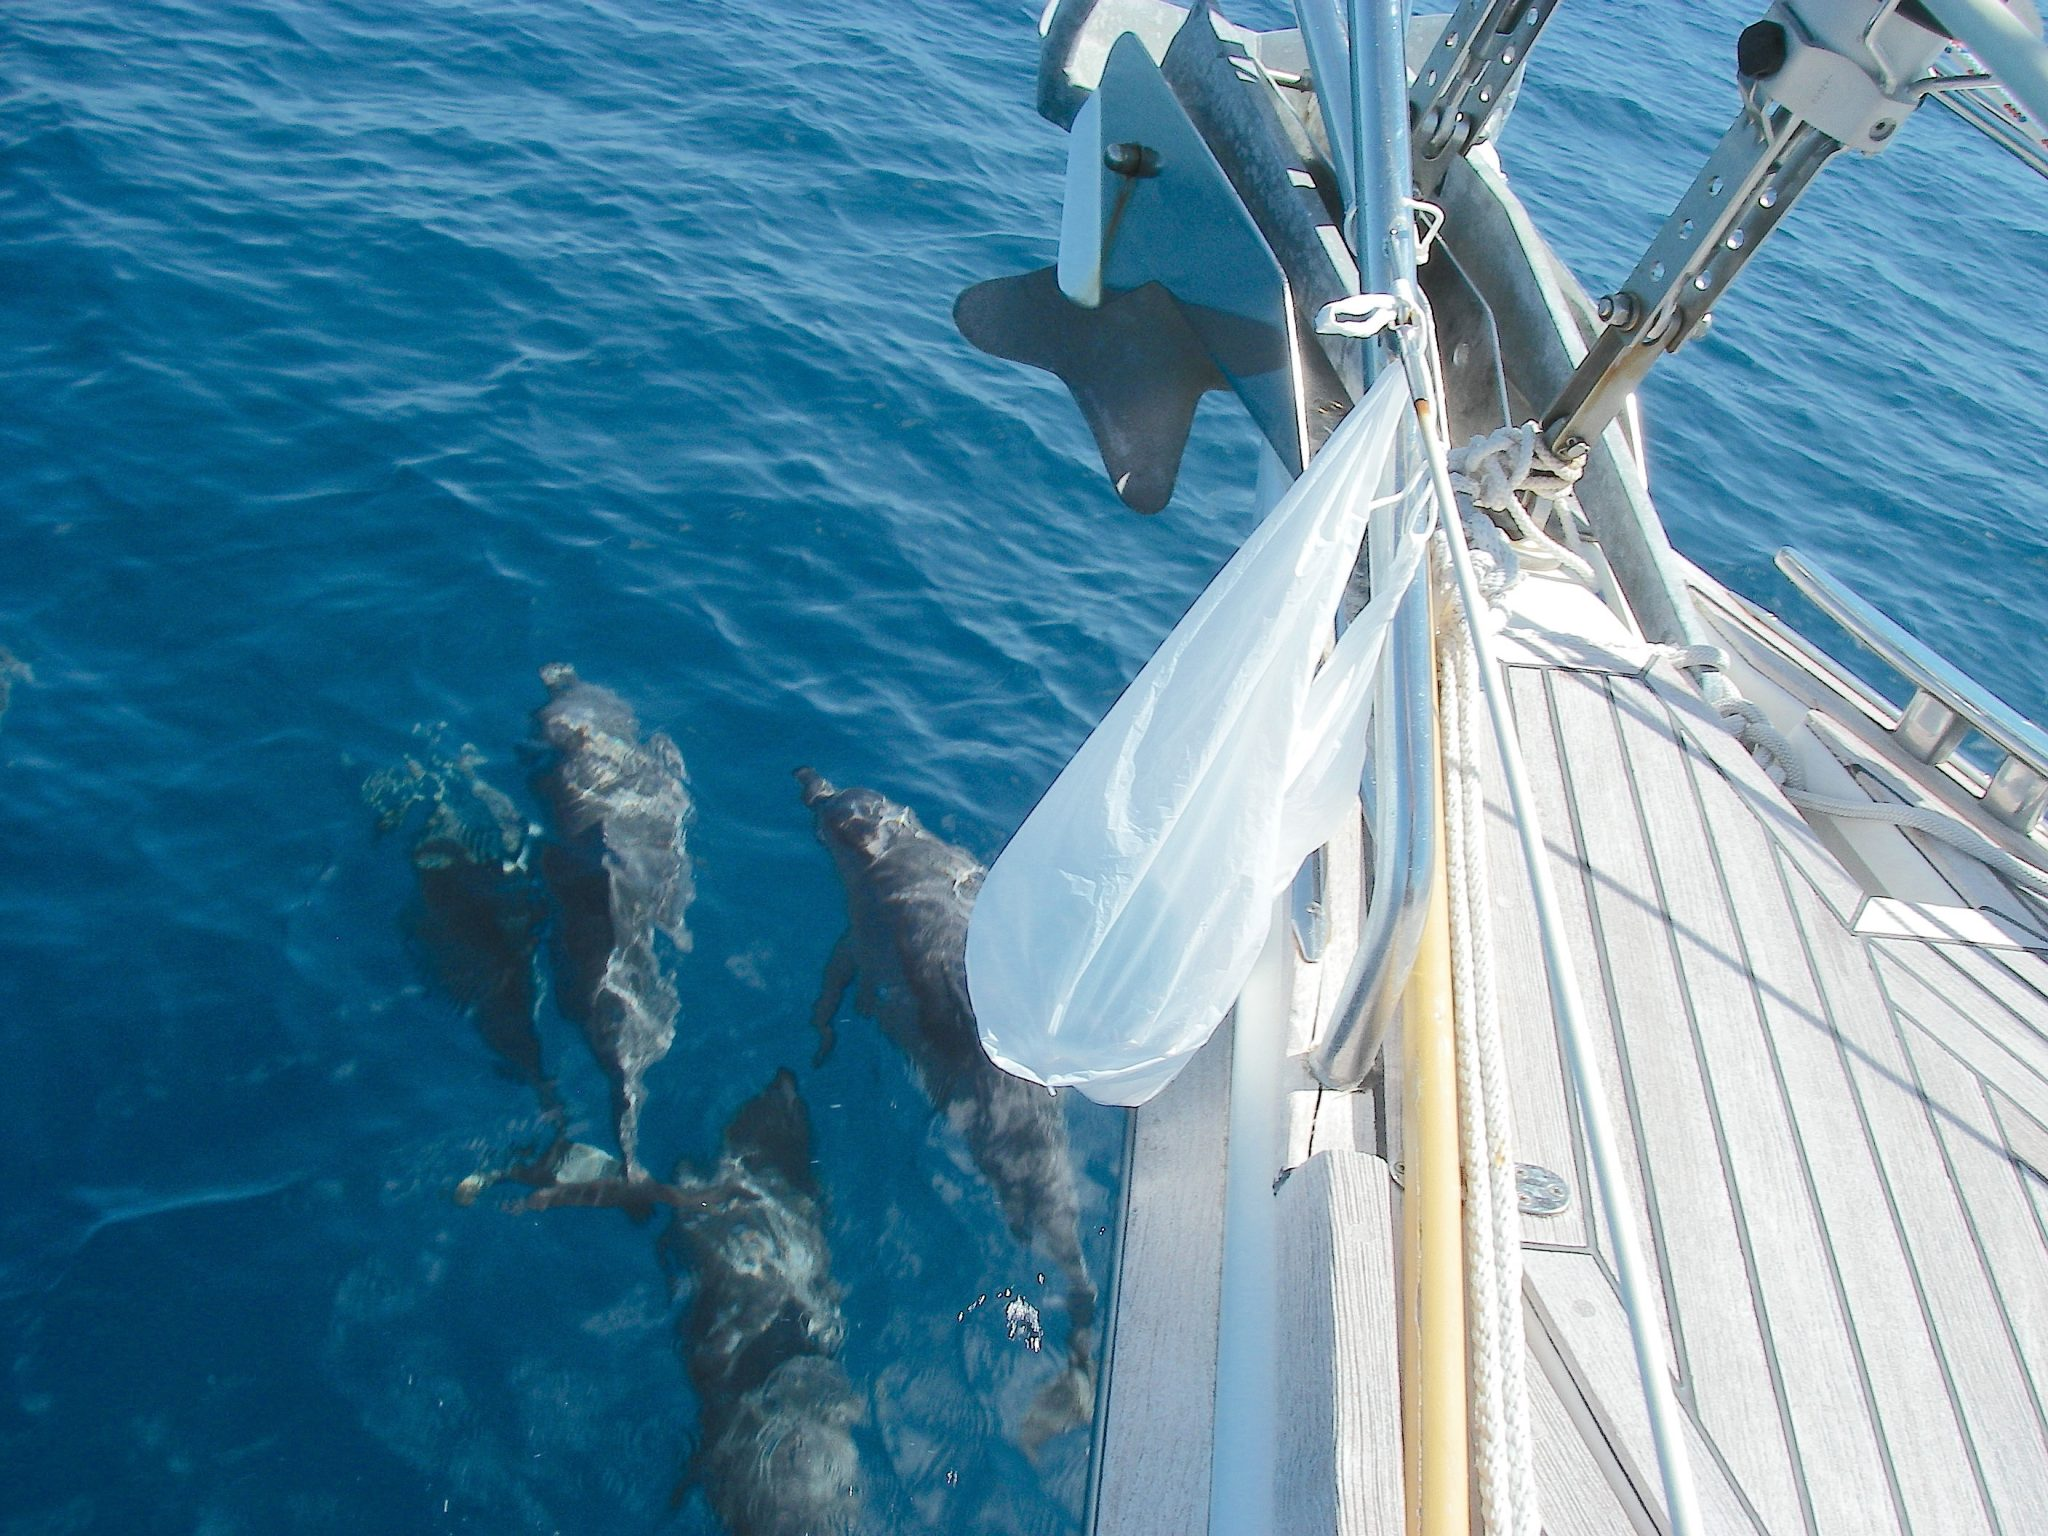 52-joyful-was-escorted-through-the-great-barrier-reef-by-a-pod-of-dolphins-the-plastic-bag-contained-some-tools-i-was-using-to-remove-a-rope-which-kept-joyfuls-two-bow-anchors-from-clinking-while